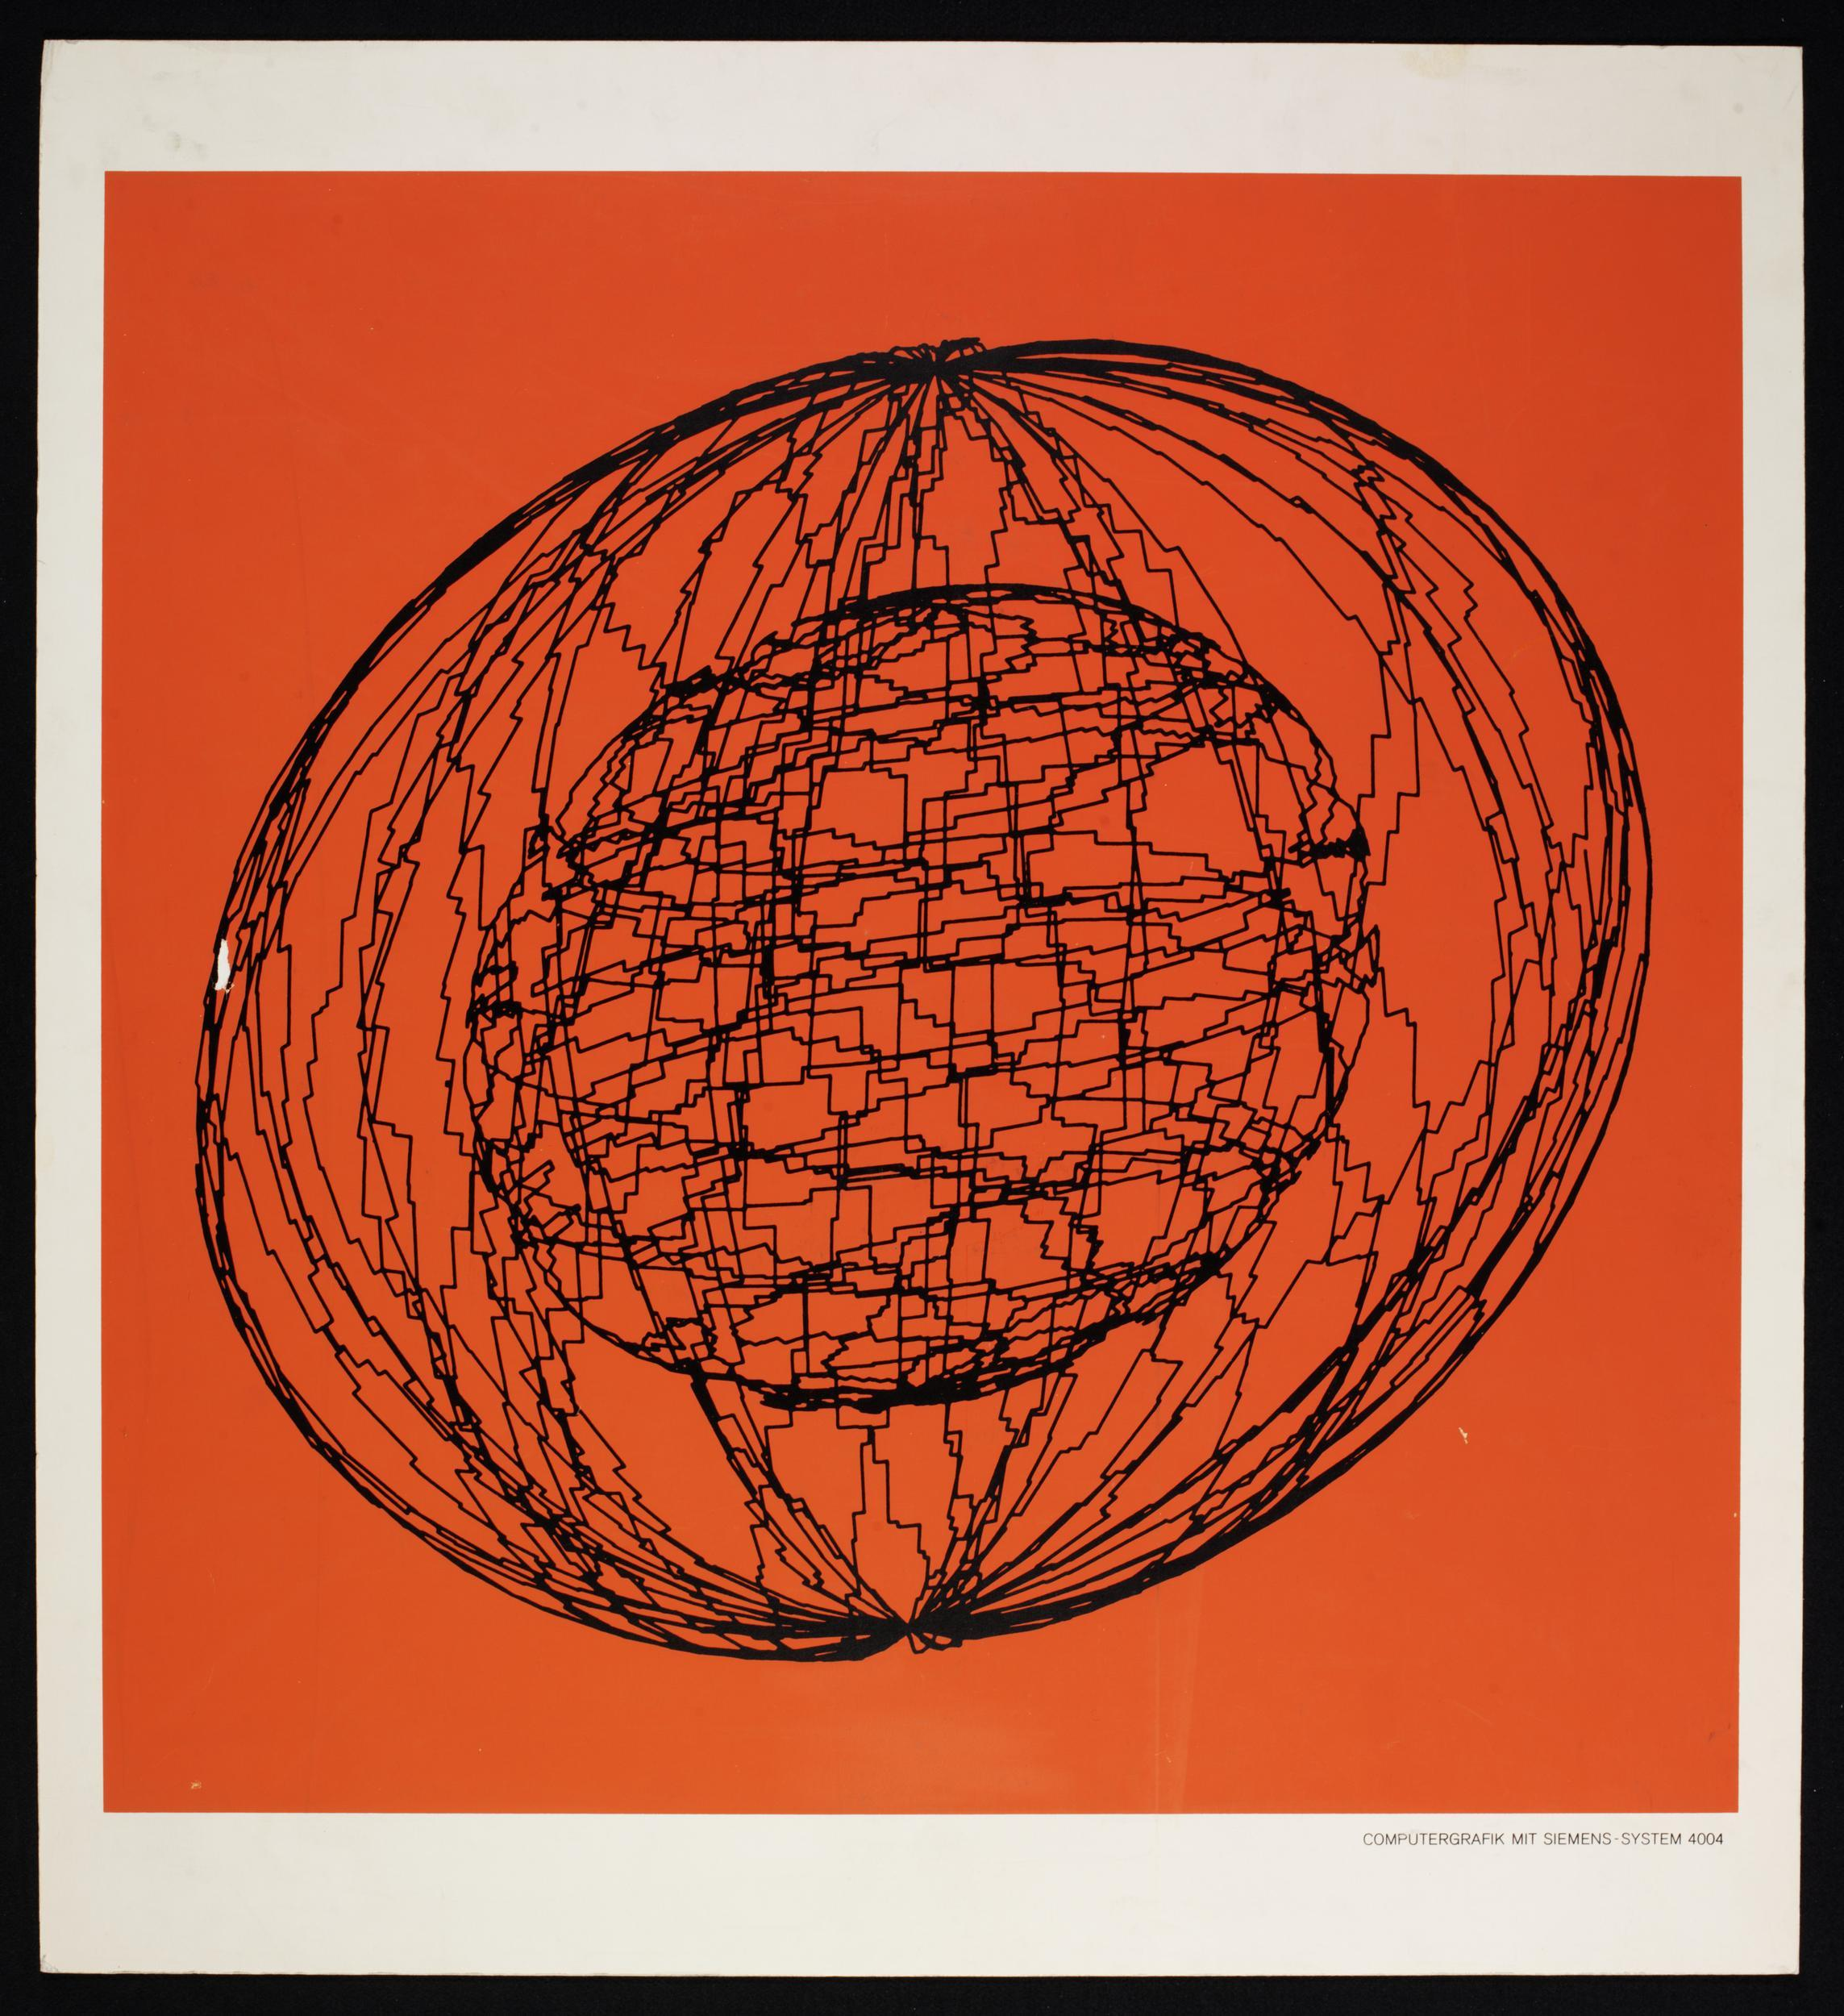 Georg Nees, Screenprint on paper, mounted on board, 1970, Given by the Computer Arts Society, supported by System Simulation Ltd, London, Copyright © Victoria and Albert Museum, London [3]